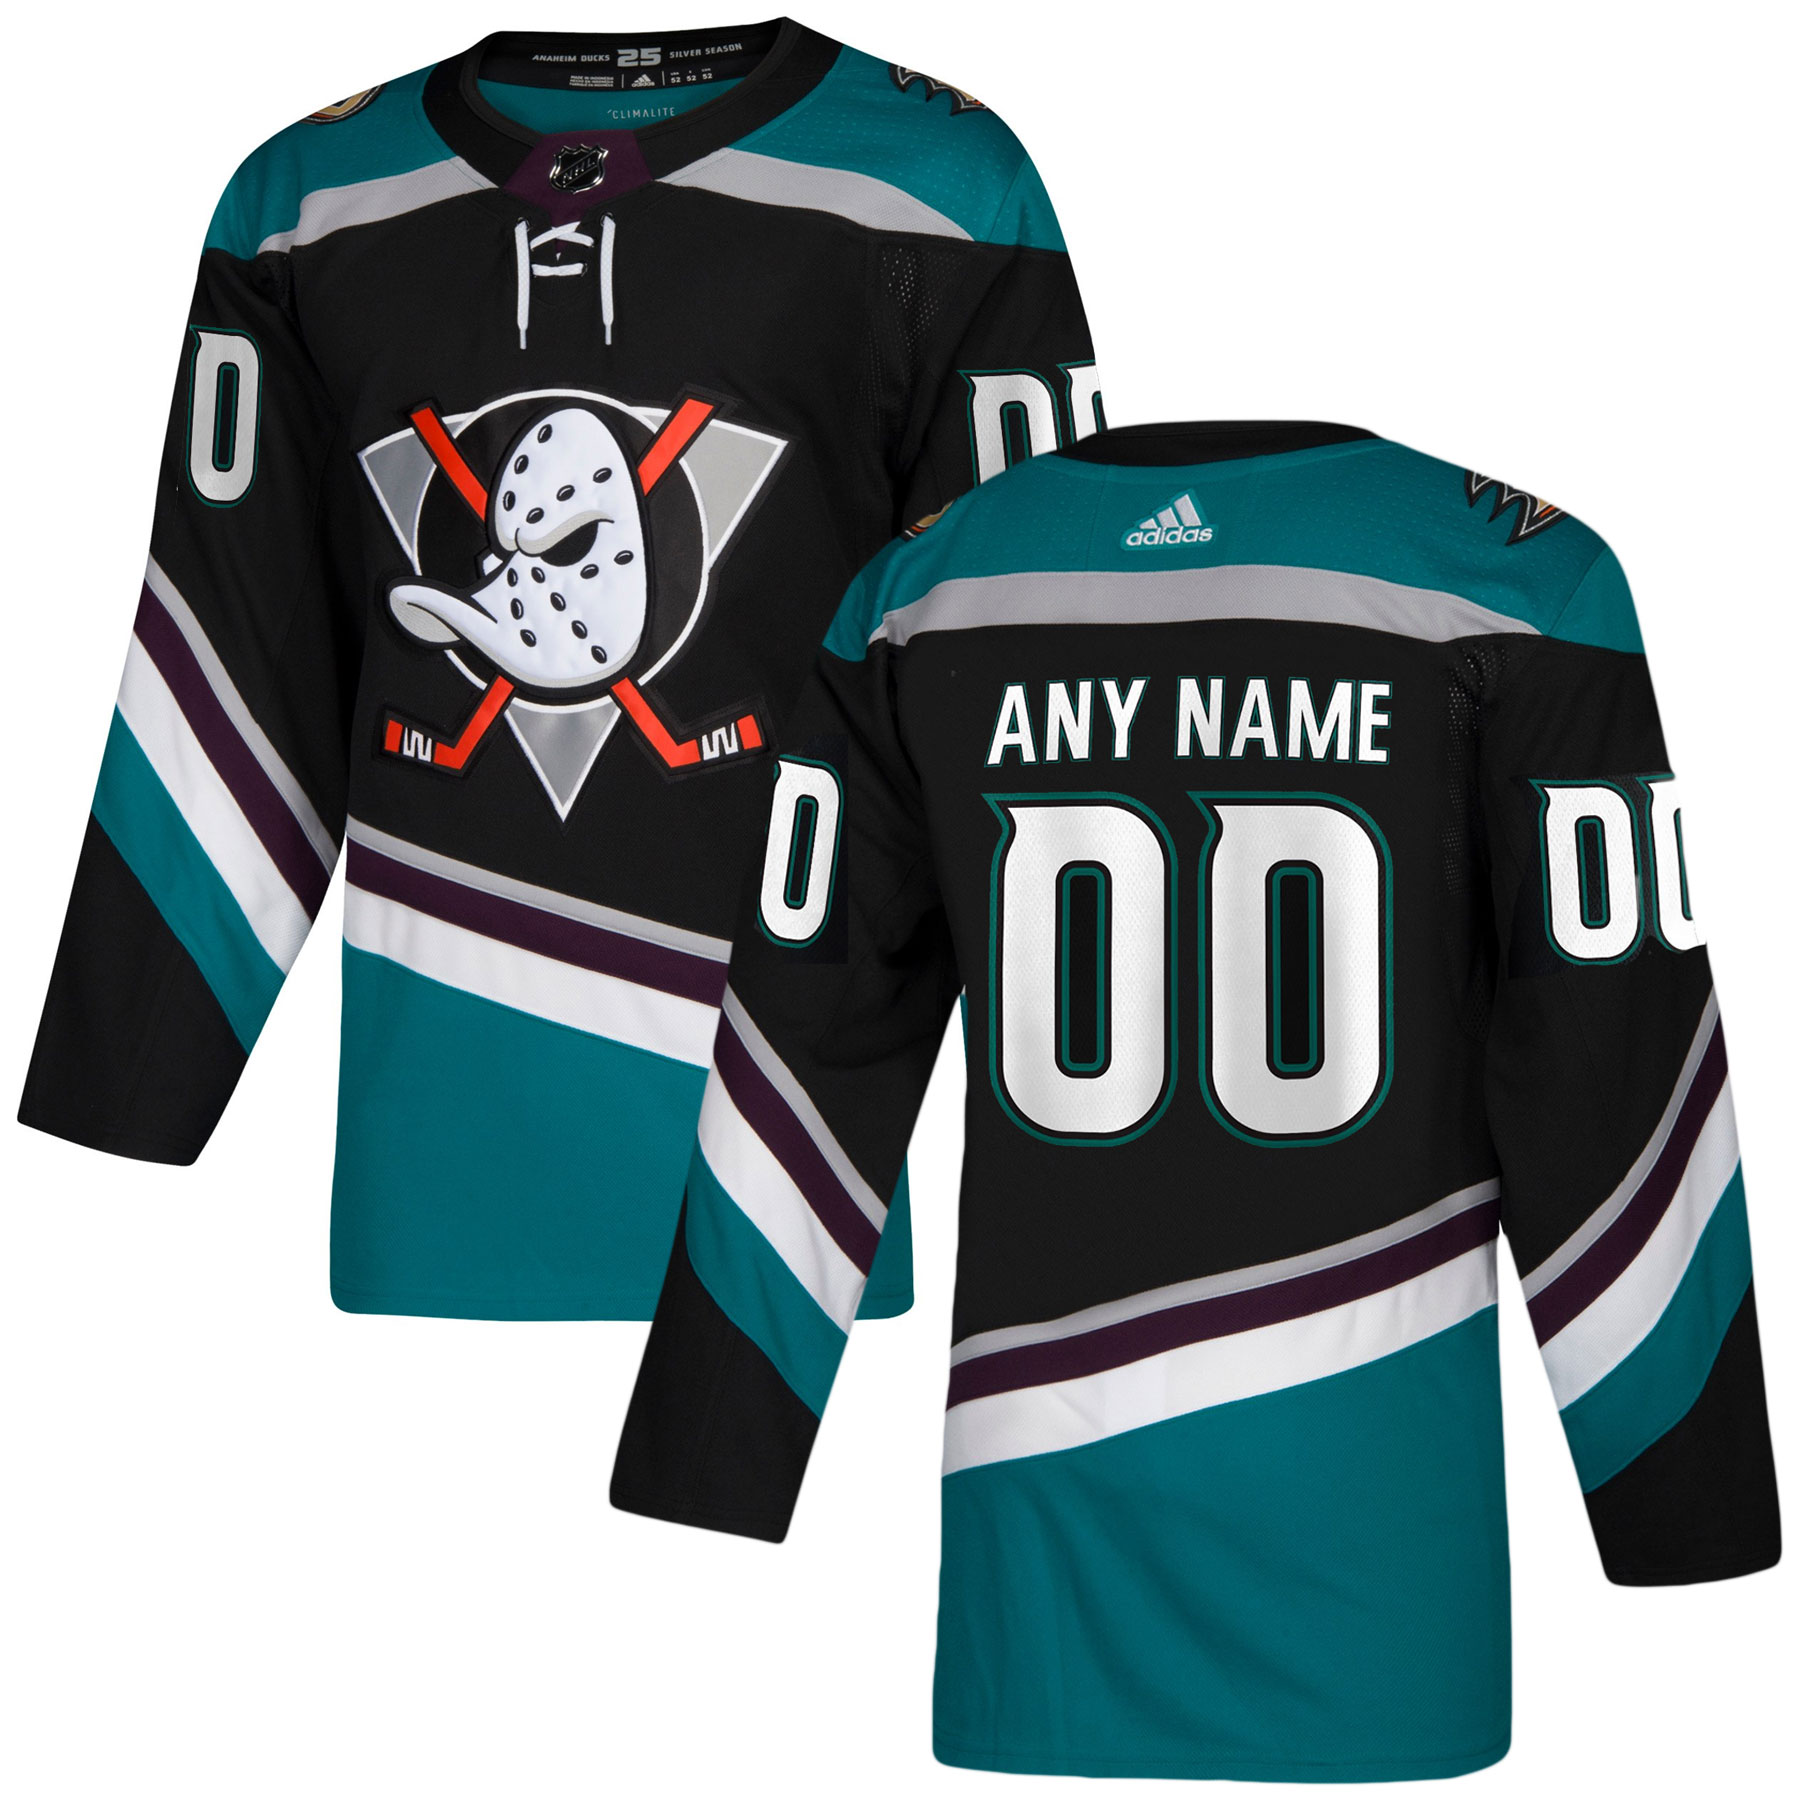 da0a3ee91 Anaheim Ducks ANY NAME adidas NHL Authentic Pro Alternate Jersey - Pro  Stitched. Hover to Zoom